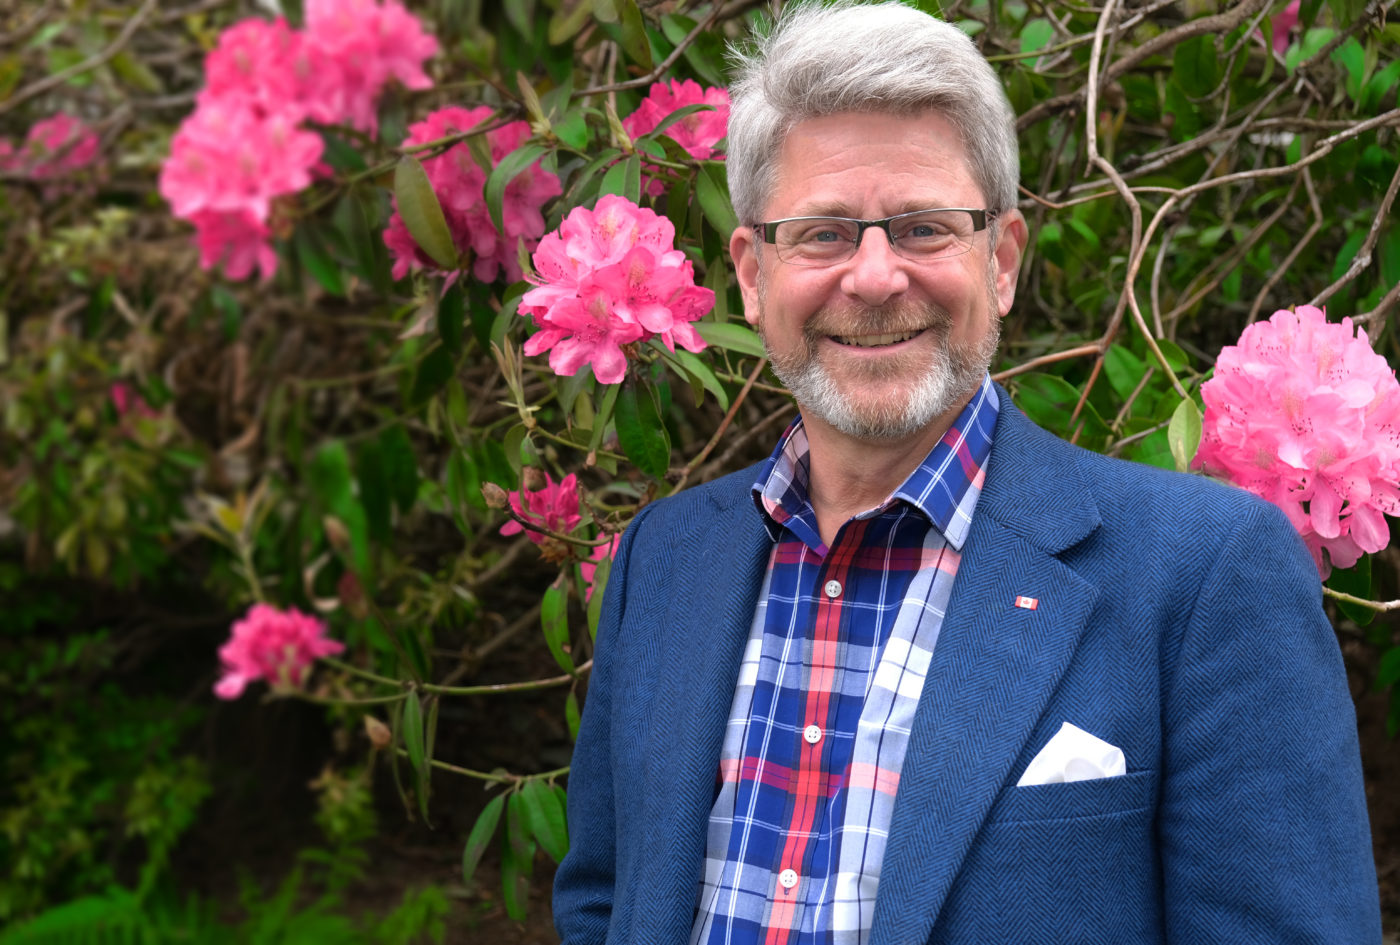 Bruce Banman Launches Campaign for Abbotsford South Riding